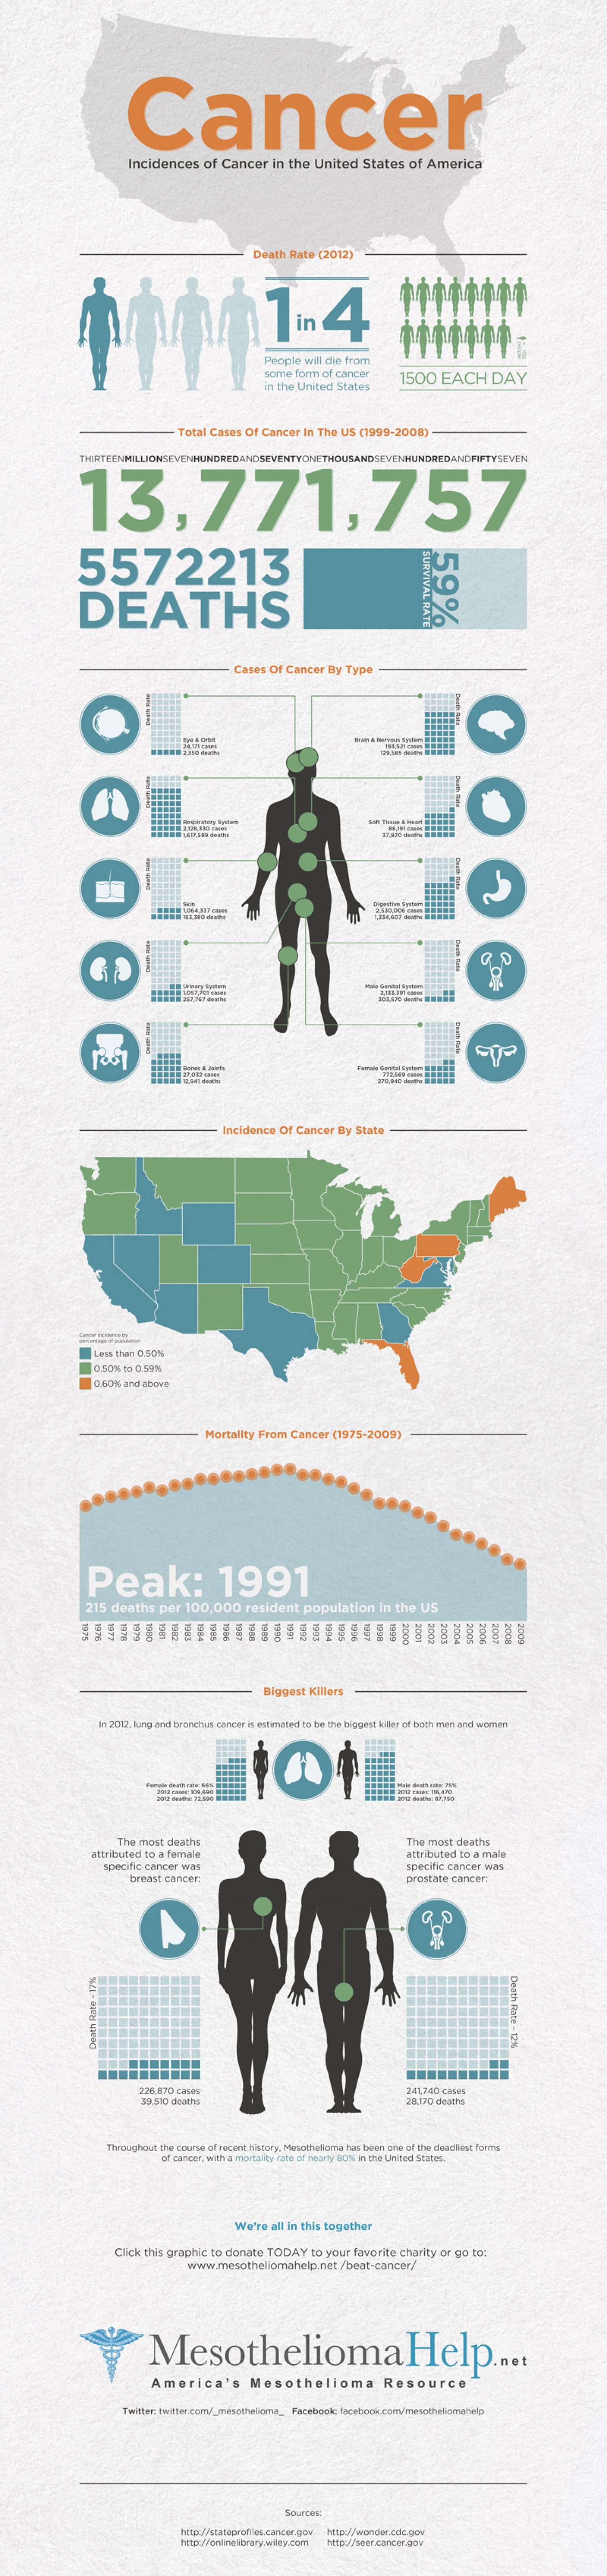 Cancer Awareness Infographic Infographic